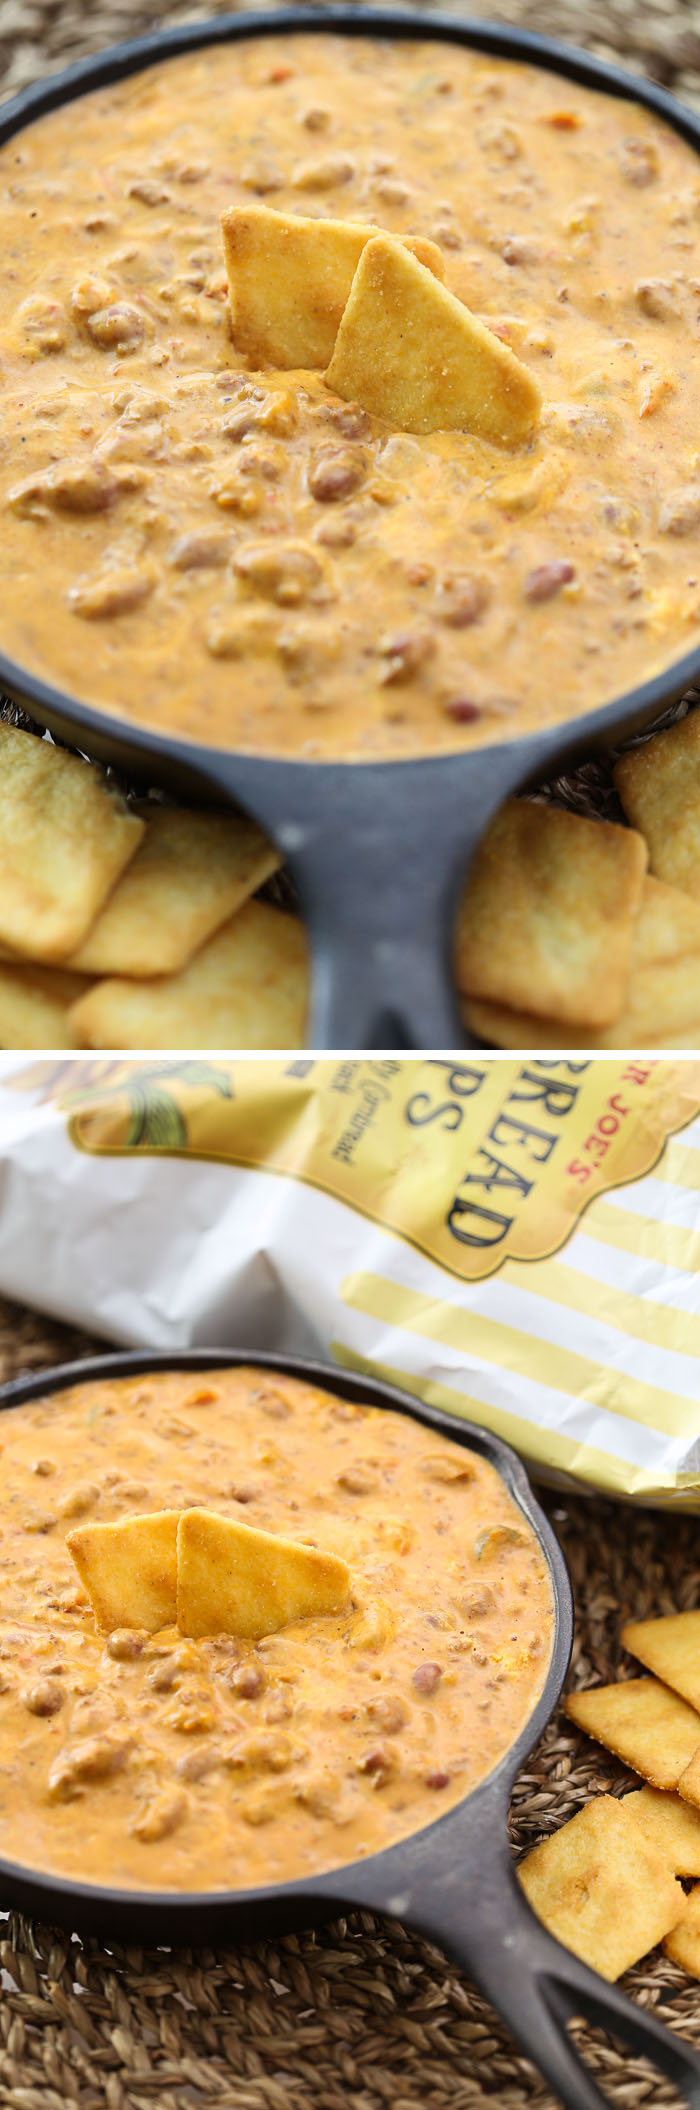 Trader Joe's Recipe: 2-Ingredient Chili Cheese Dip